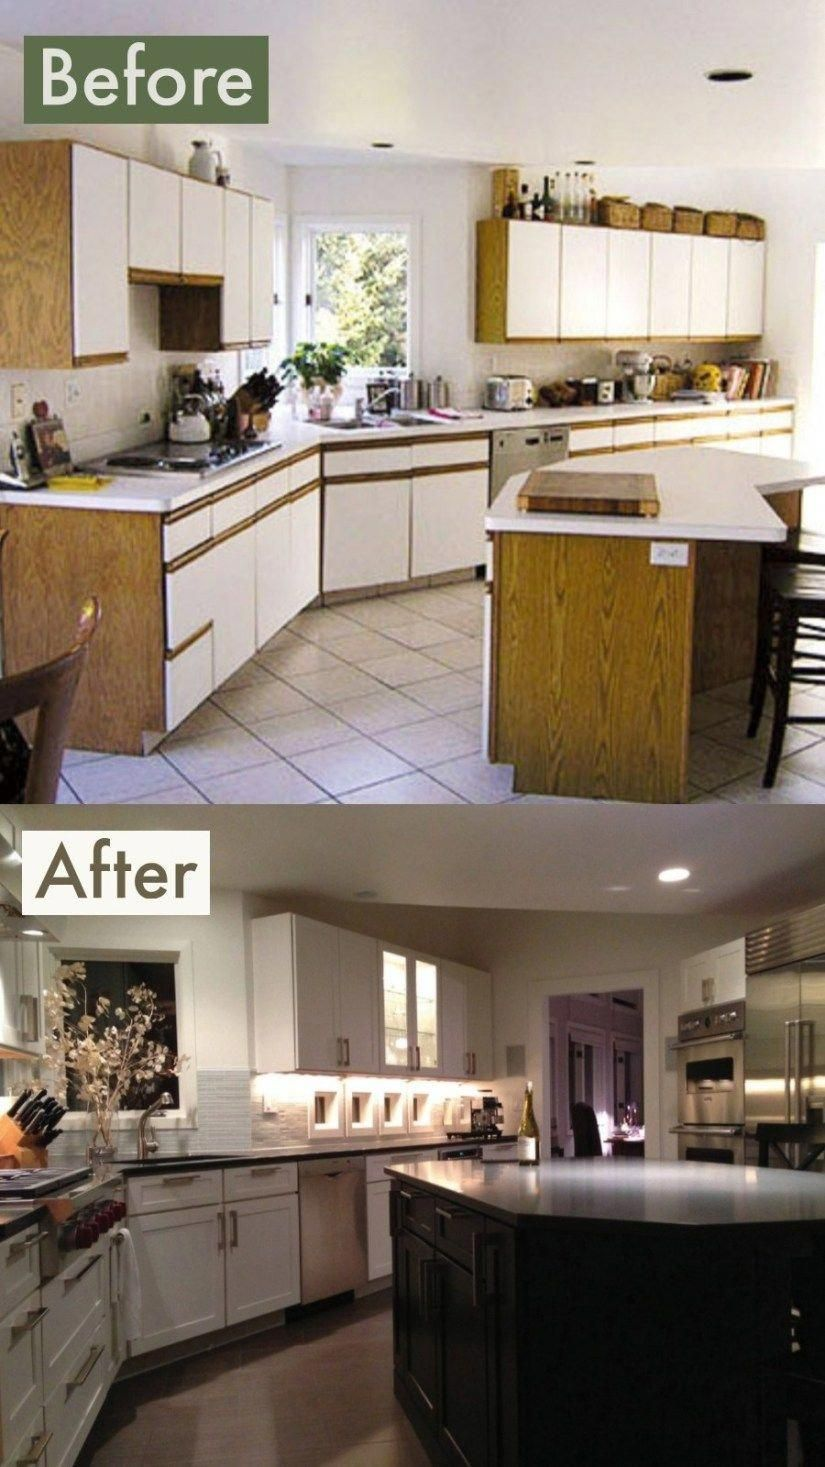 Galley Kitchen Remodel Before And After Ideas 2019 Trends #onabudget #small #beforeandafter #fixerupper #ideas #narrow #layout #joannagaines #open #island #homeremodelingpictures #opengalleykitchen Galley Kitchen Remodel Before And After Ideas 2019 Trends #onabudget #small #beforeandafter #fixerupper #ideas #narrow #layout #joannagaines #open #island #homeremodelingpictures #opengalleykitchen Galley Kitchen Remodel Before And After Ideas 2019 Trends #onabudget #small #beforeandafter #fixerupper #opengalleykitchen